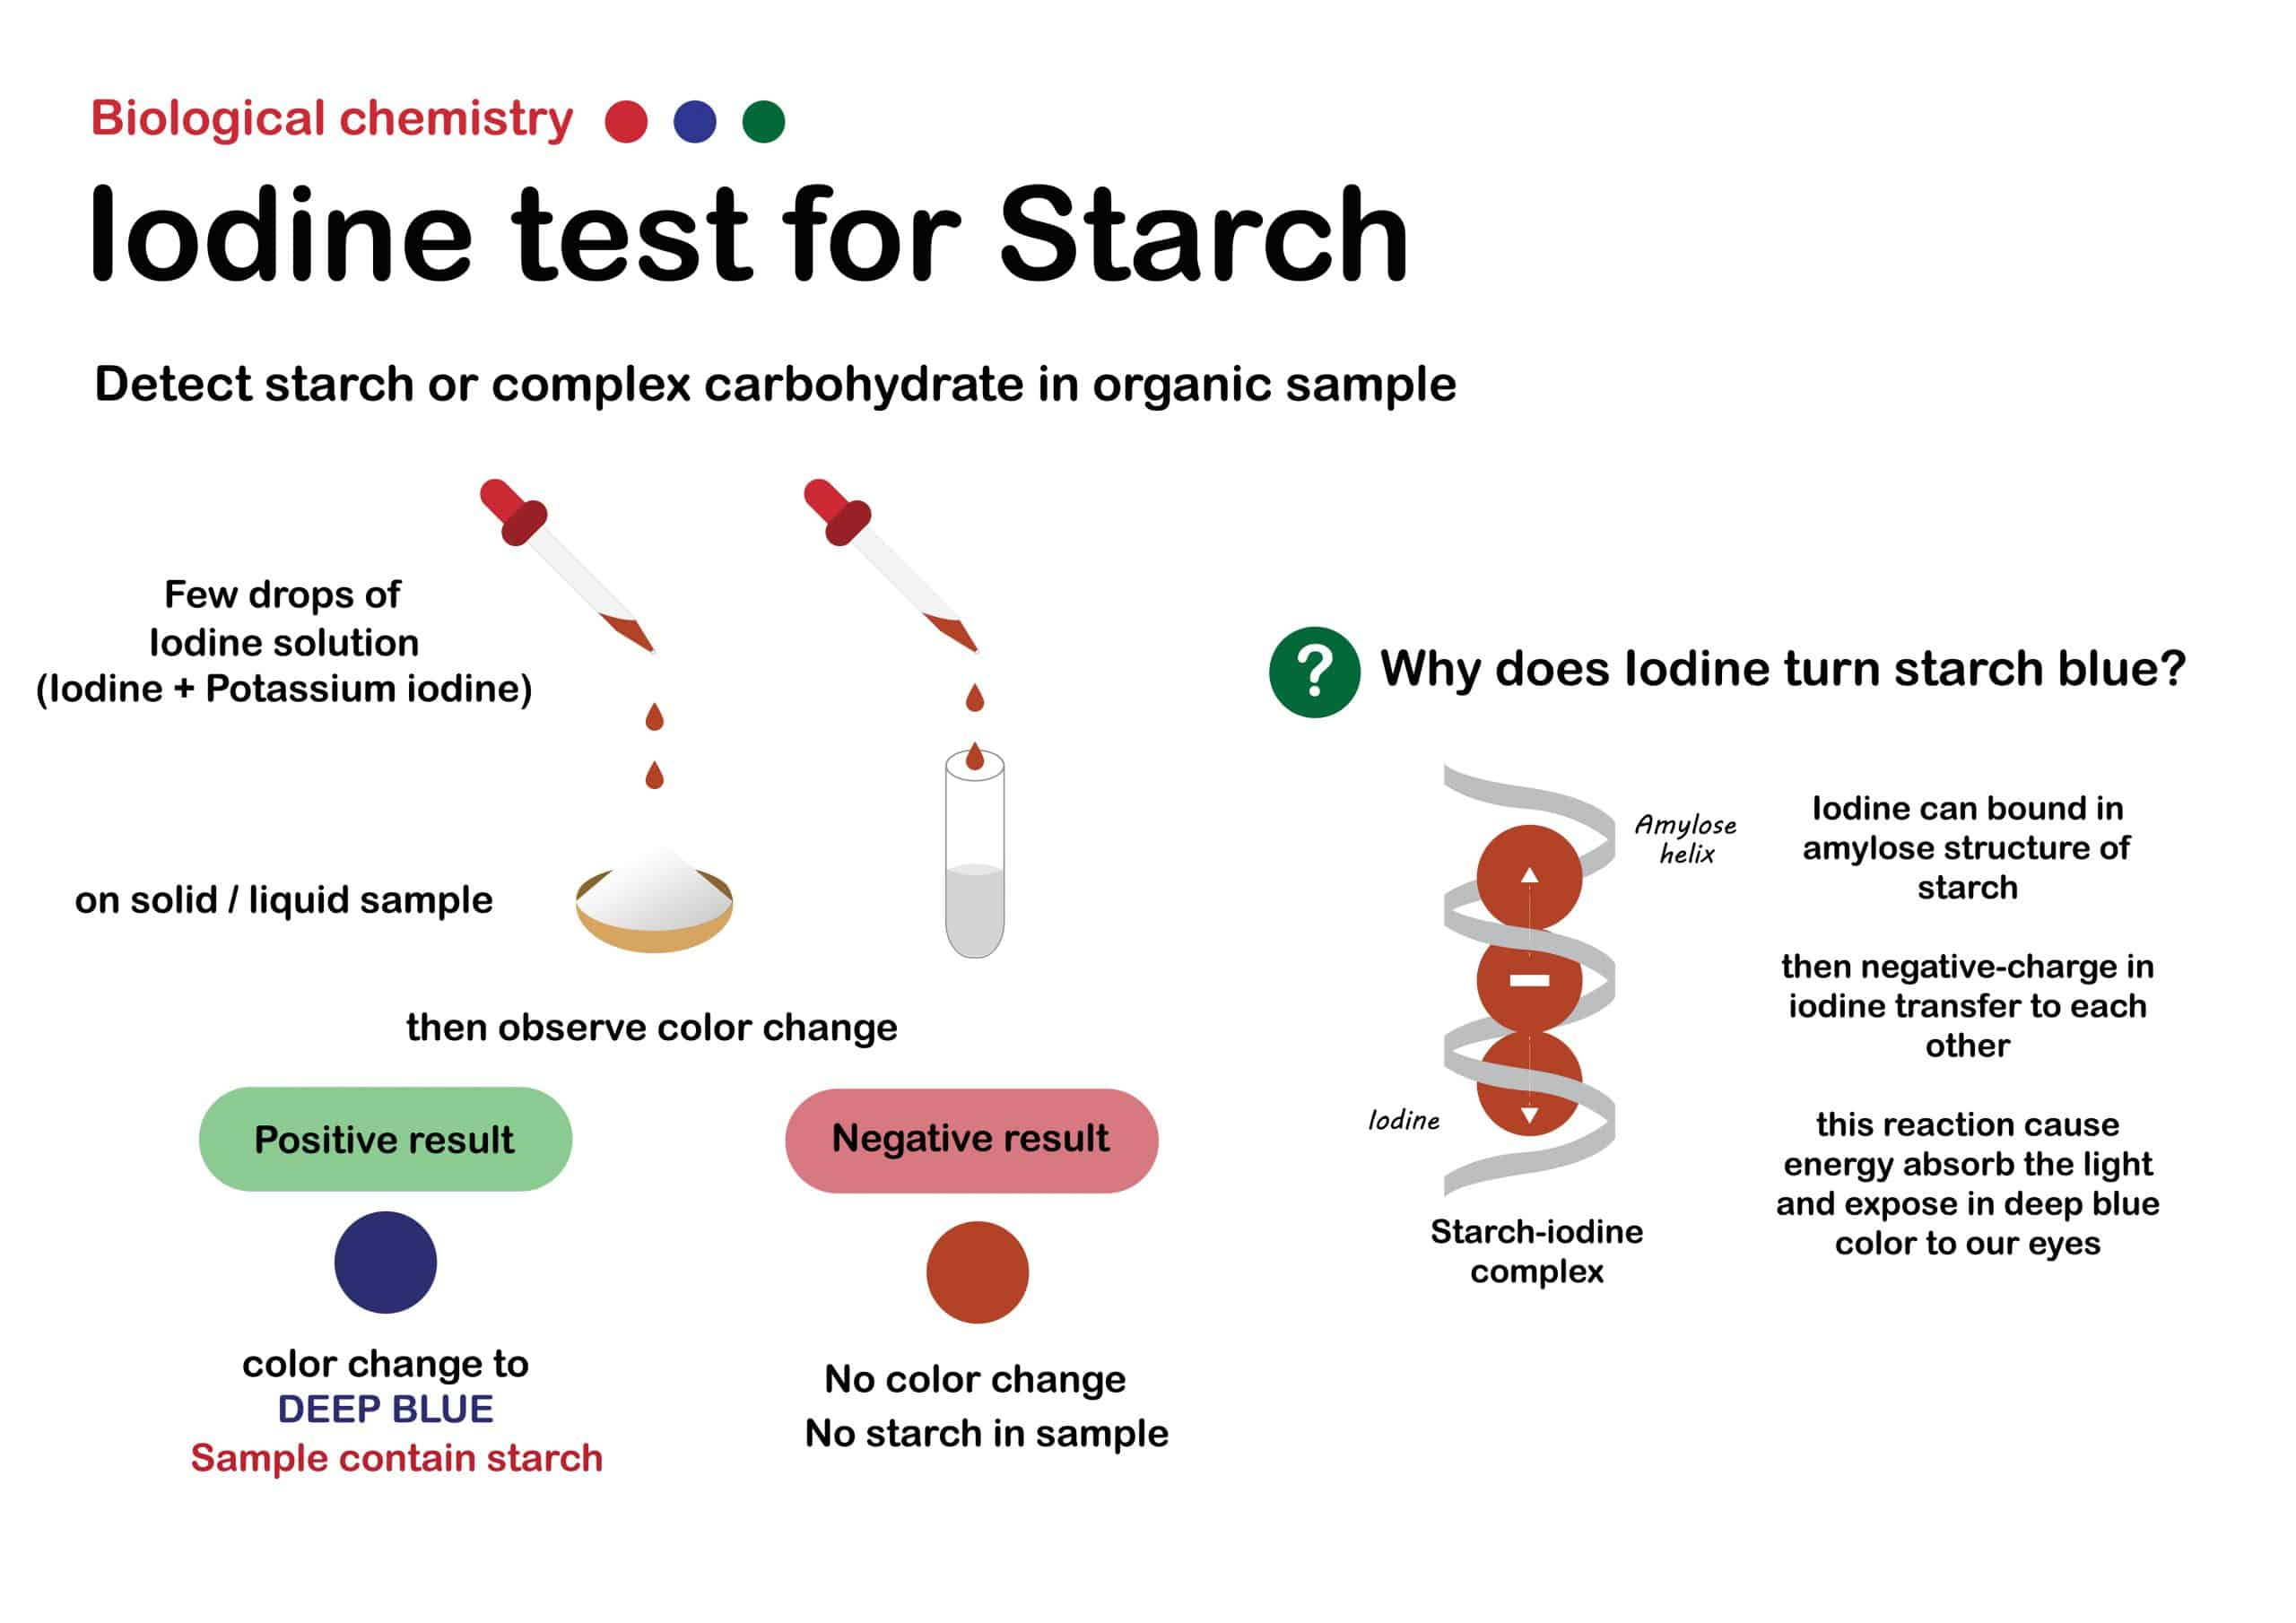 Biology chemistry show experiment of iodine test for detect starch (or carbohydrate) in sample such as food, milk, cosmetic or other